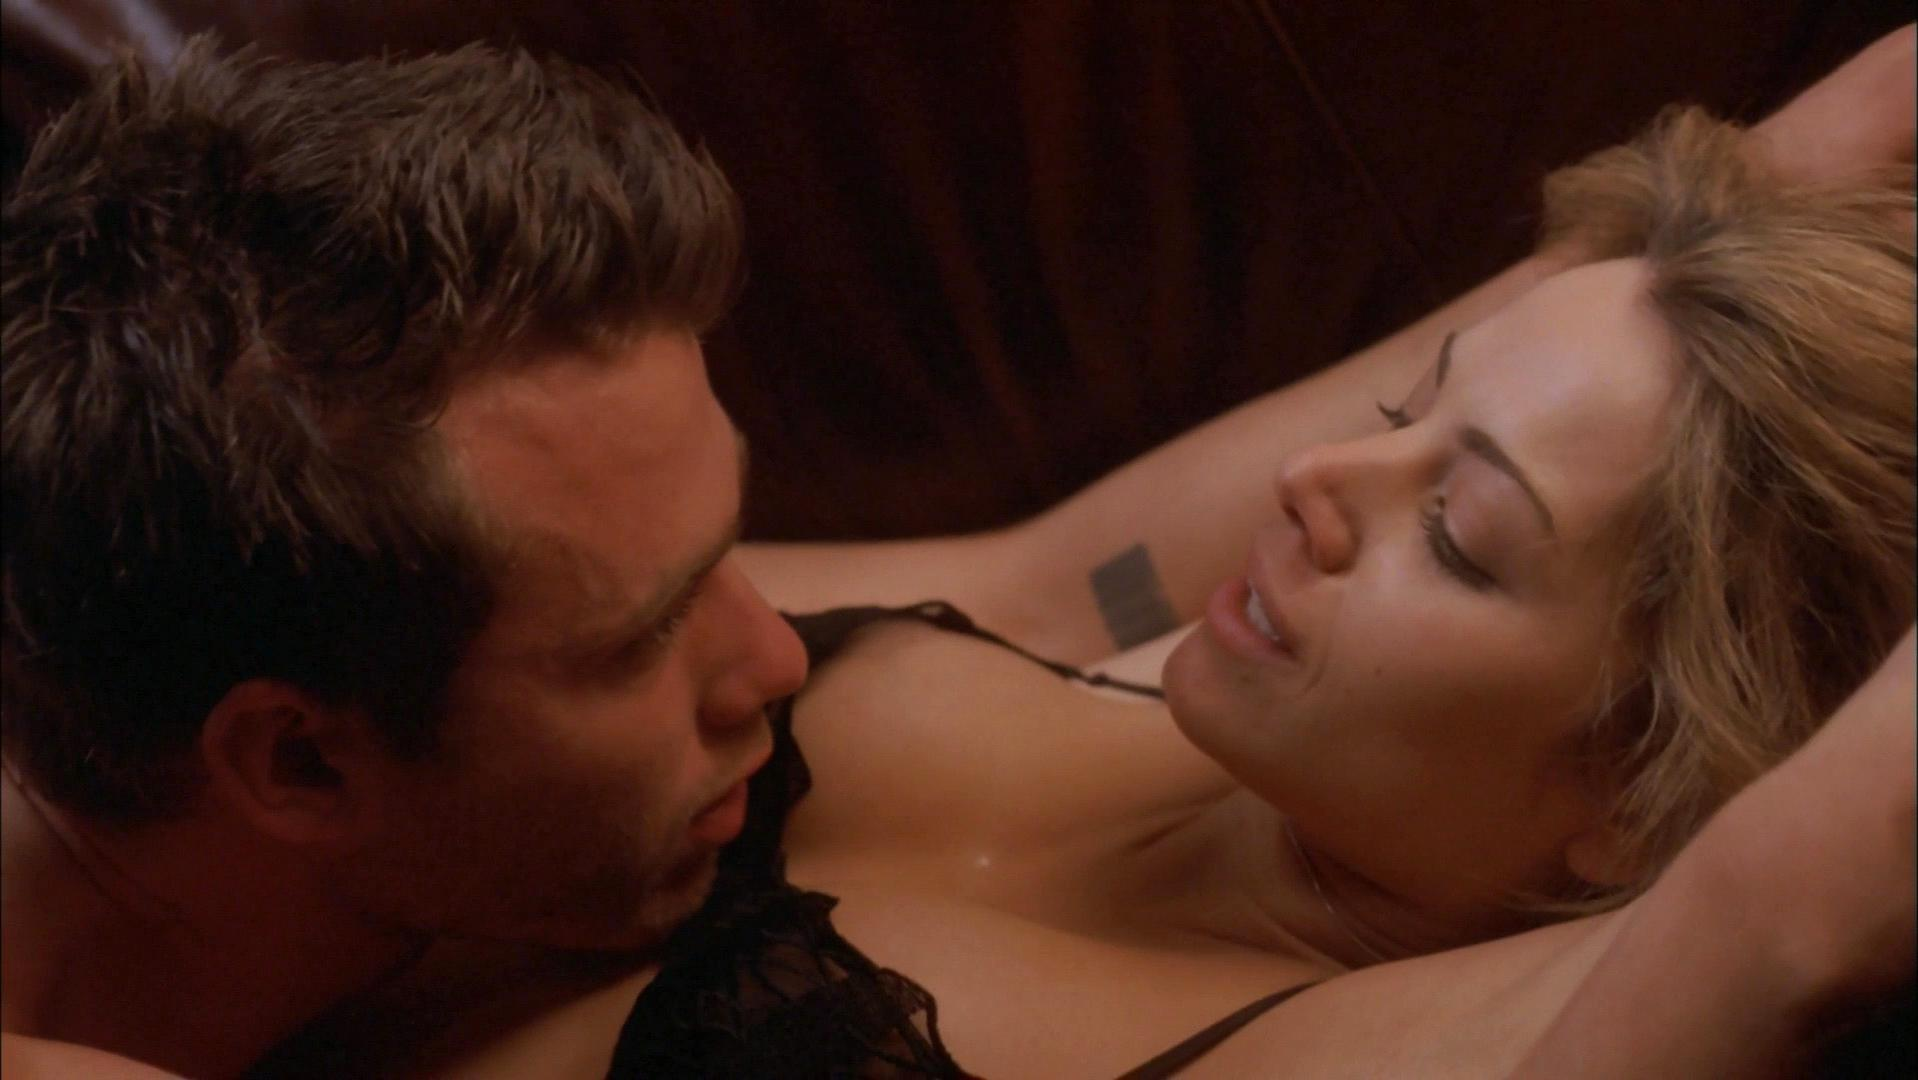 Erica Durance sexy - The Butterfly Effect 2 (2006)